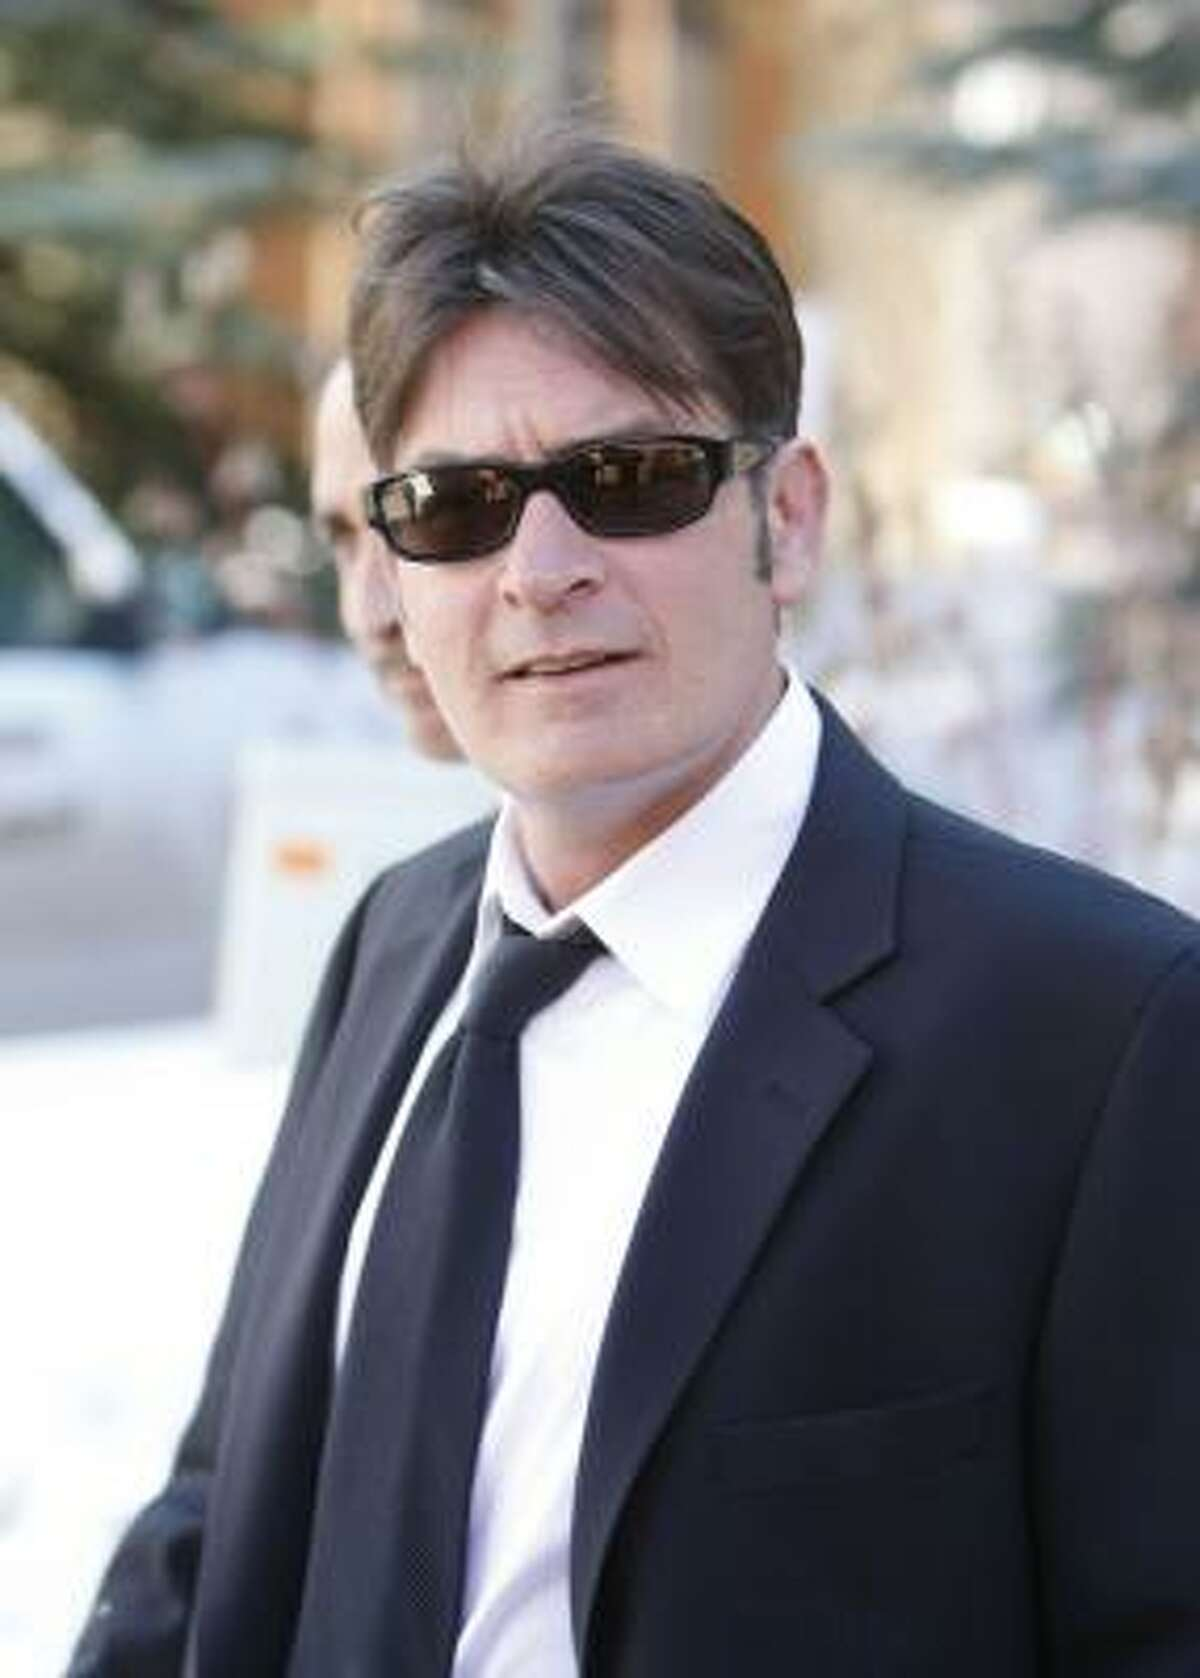 Charlie Sheen has had a busy year. He filed for divorce from third wife and mother to his twins, Brooke Mueller, after being charged with assault last Christmas. And he was found drunk and naked in a trashed hotel room while on vacation with his second wife Denise Richards and their two daughters.